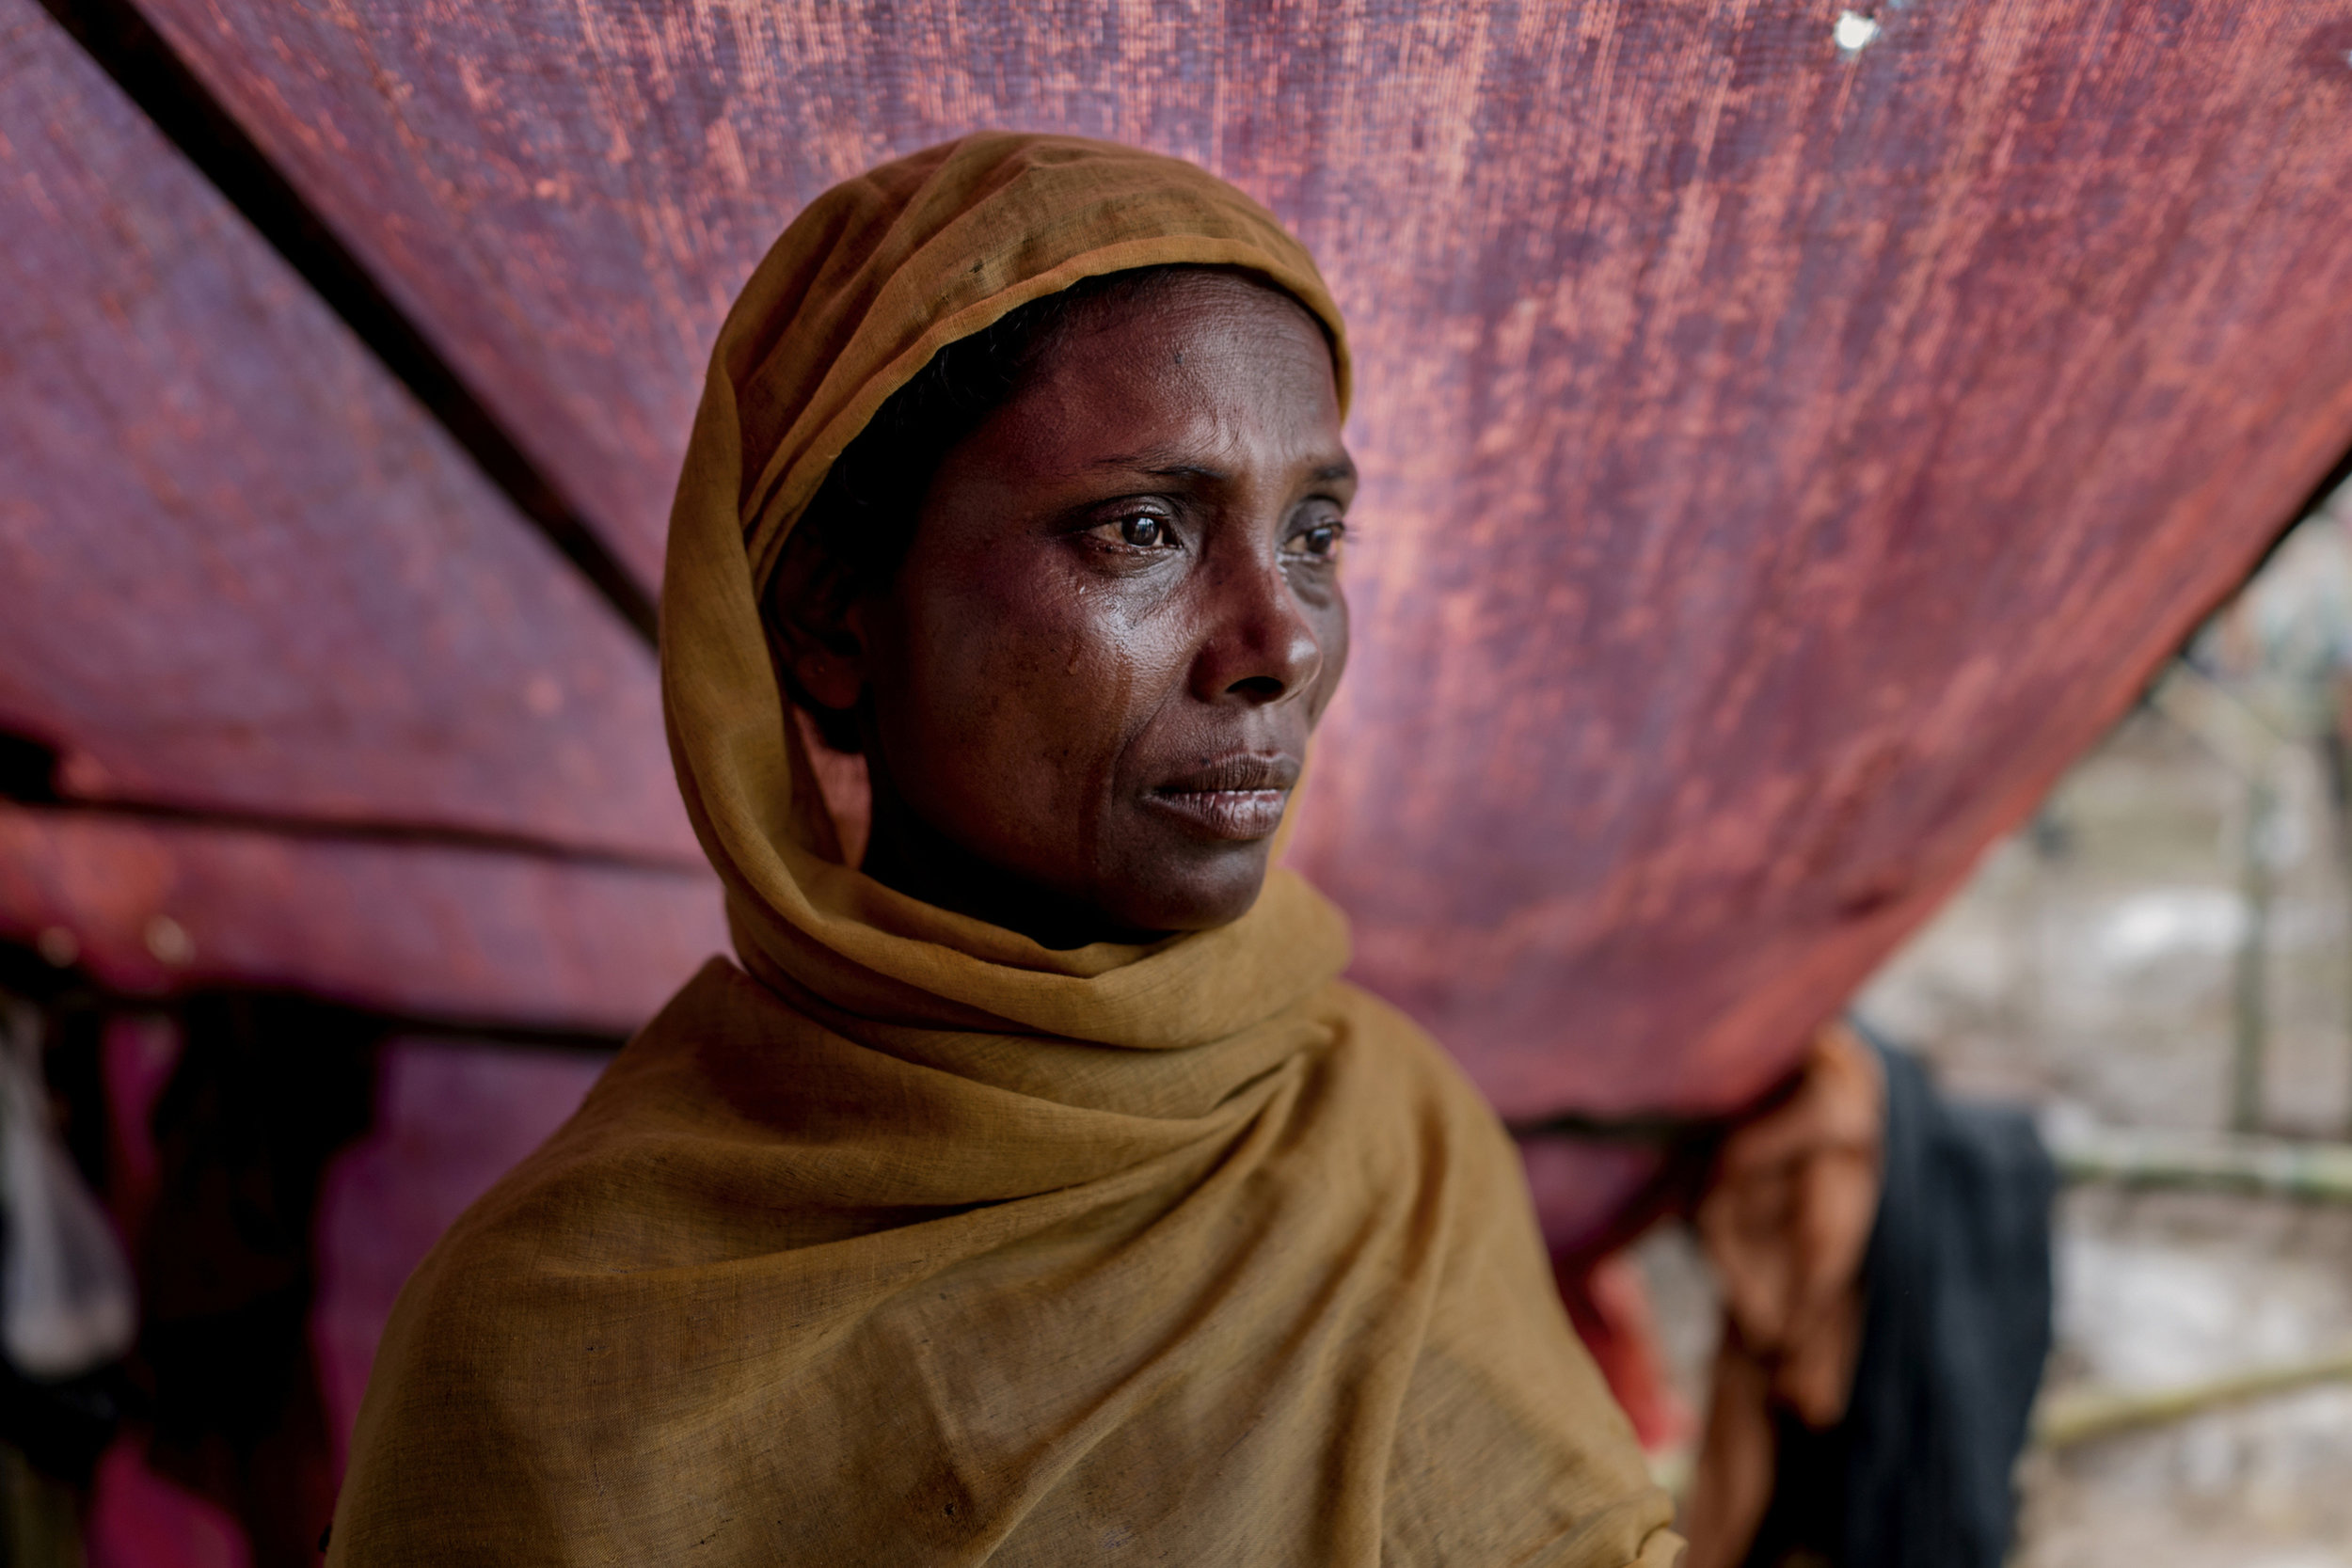 A Rohingya mother, her 5 years old only son was shot to death by Burmese military. They shot in his ear while Myanmar military was putting land mine 25 days ago. She walked with her husband Abdur Rahman to the Bangladesh border with her wife and 6 daughters for 7 days then entered to Palangkhali border, Bangladesh.